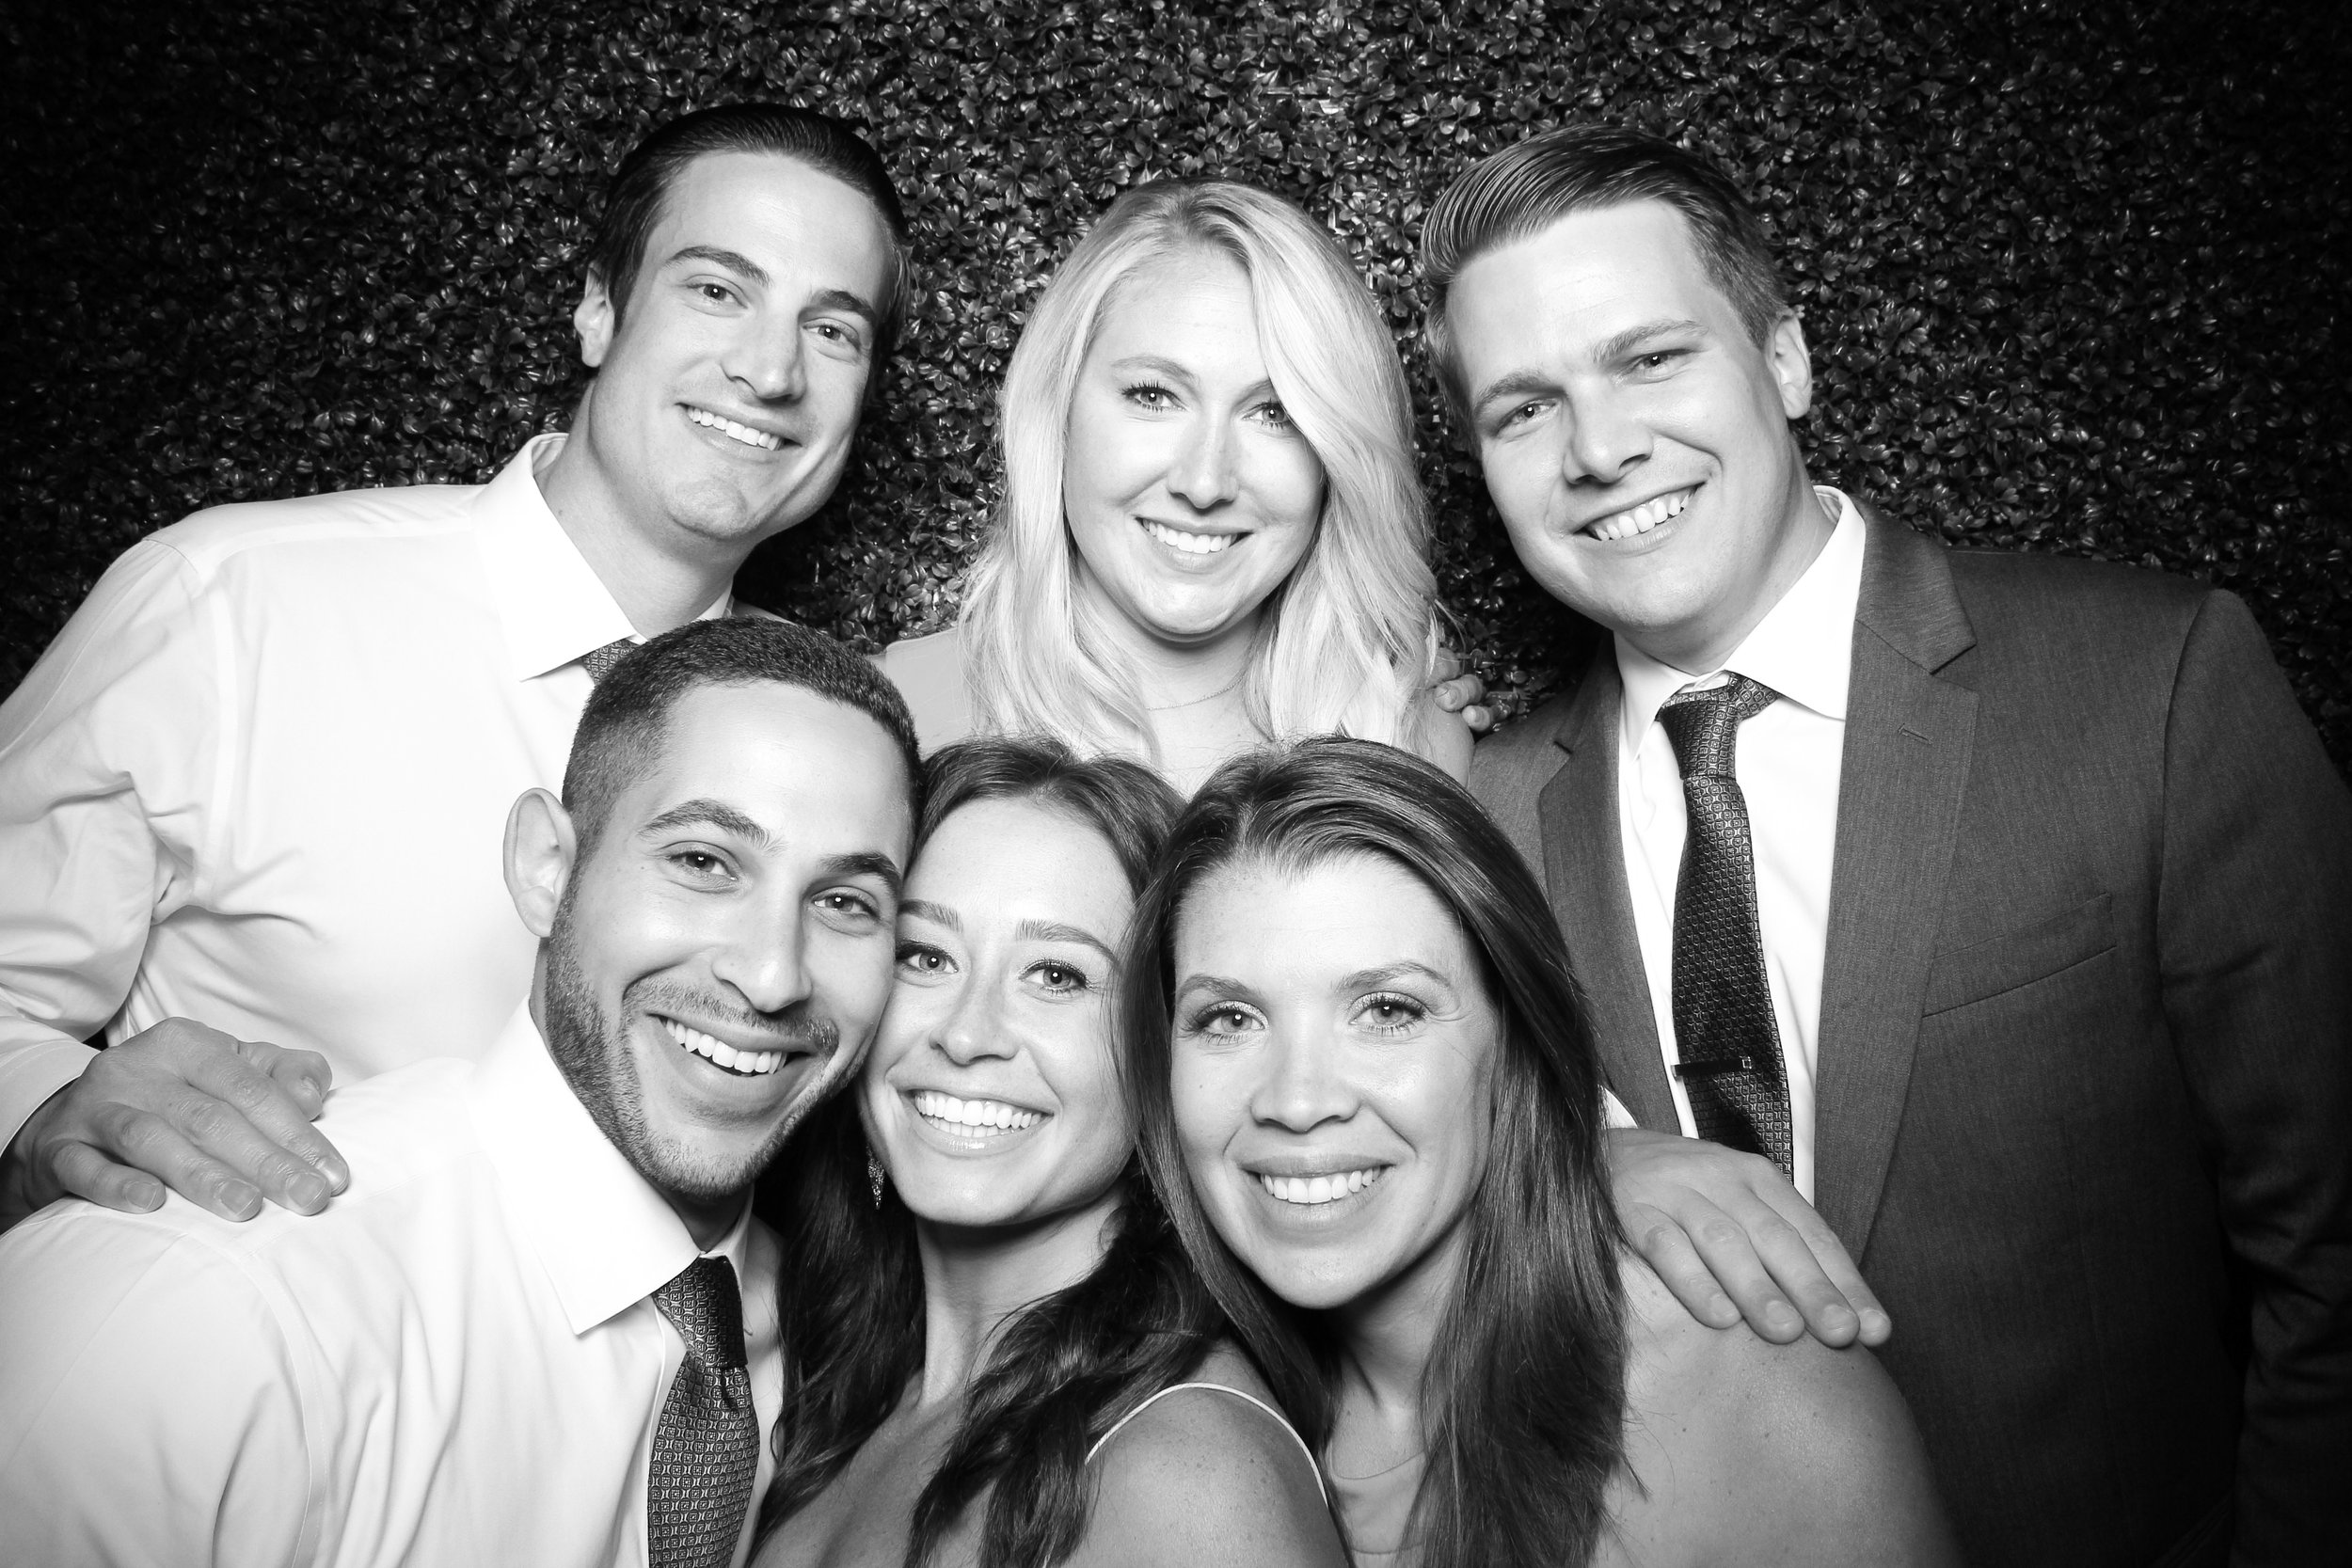 Ivy_Room_Chicago_Photo_Booth_Wedding_01.jpg